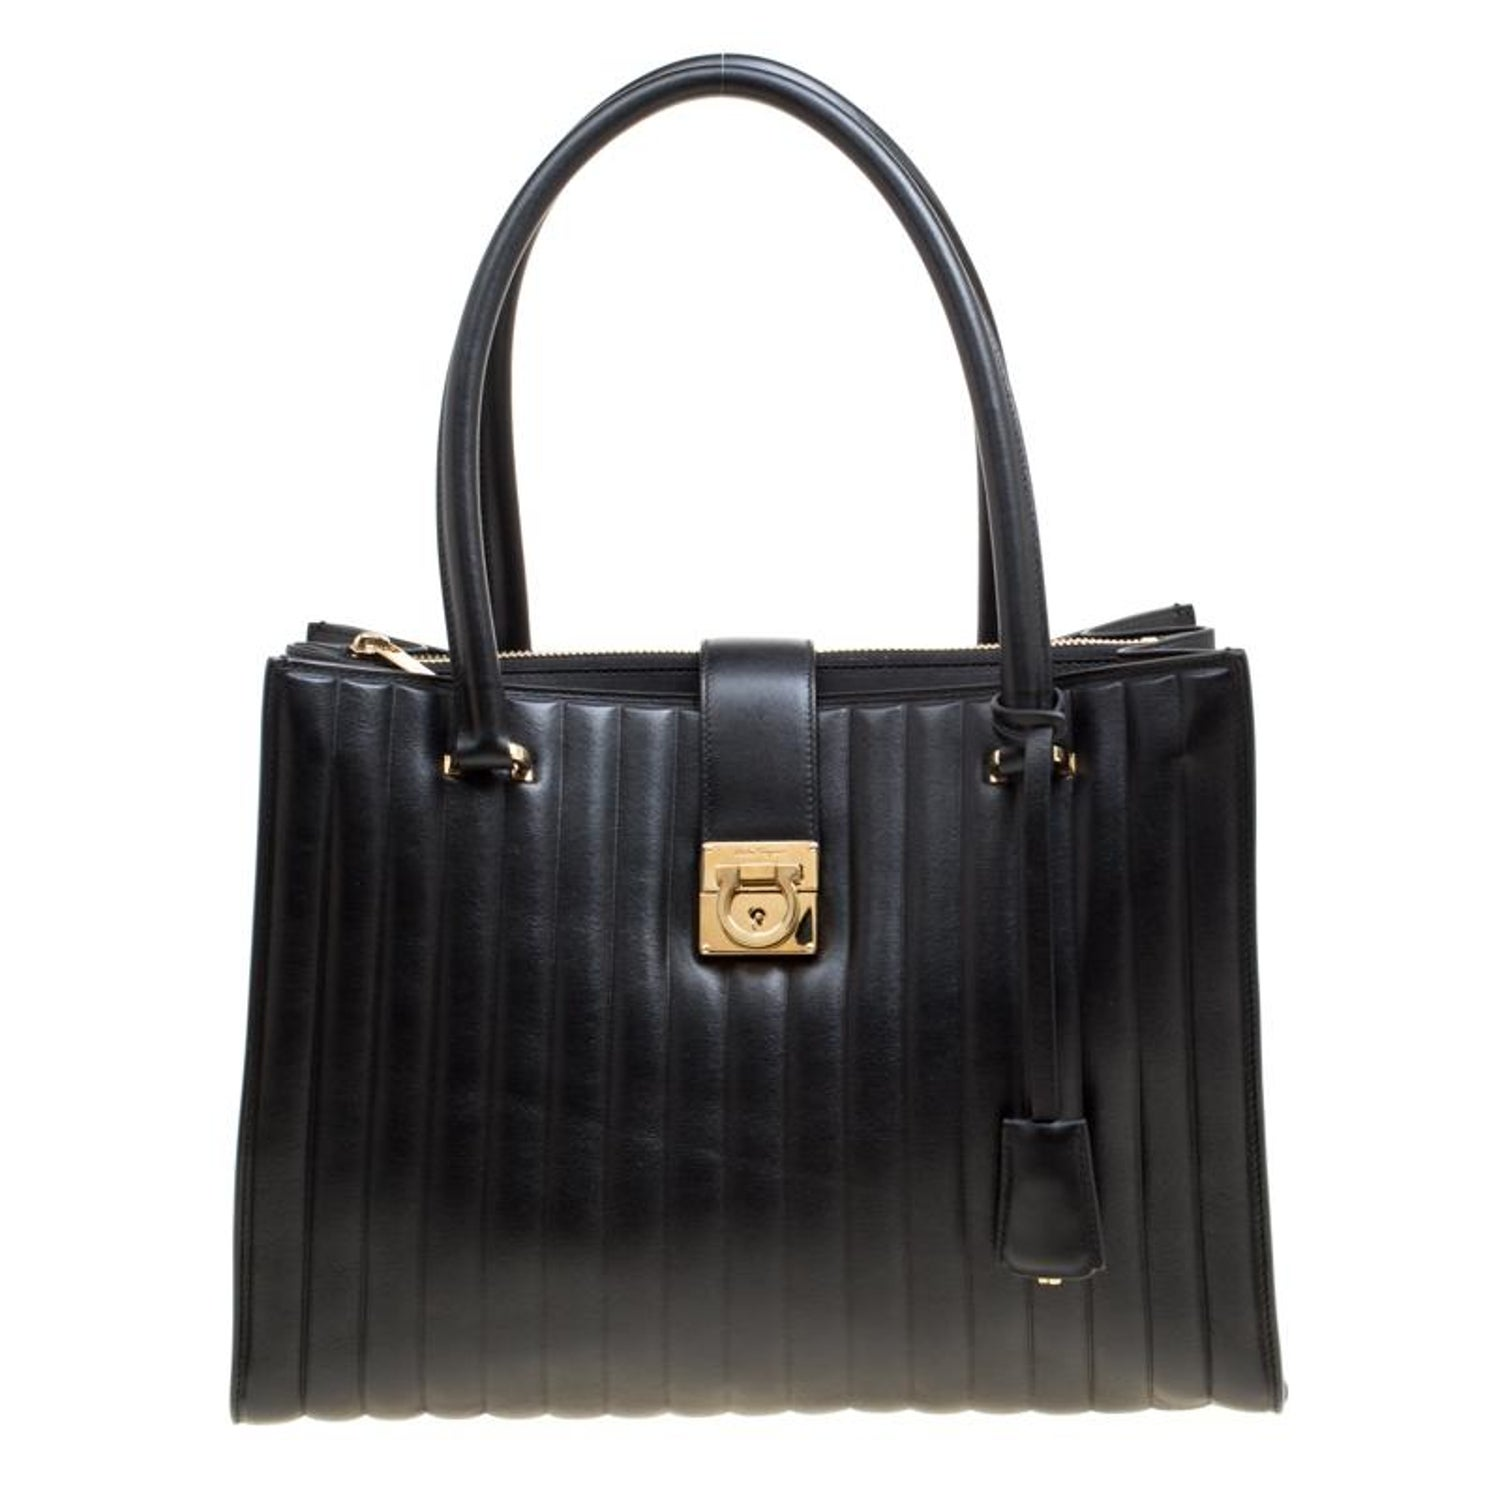 53ceccee57 Salvatore Ferragamo Black Vertical Quilted Leather Juliette Tote For Sale  at 1stdibs